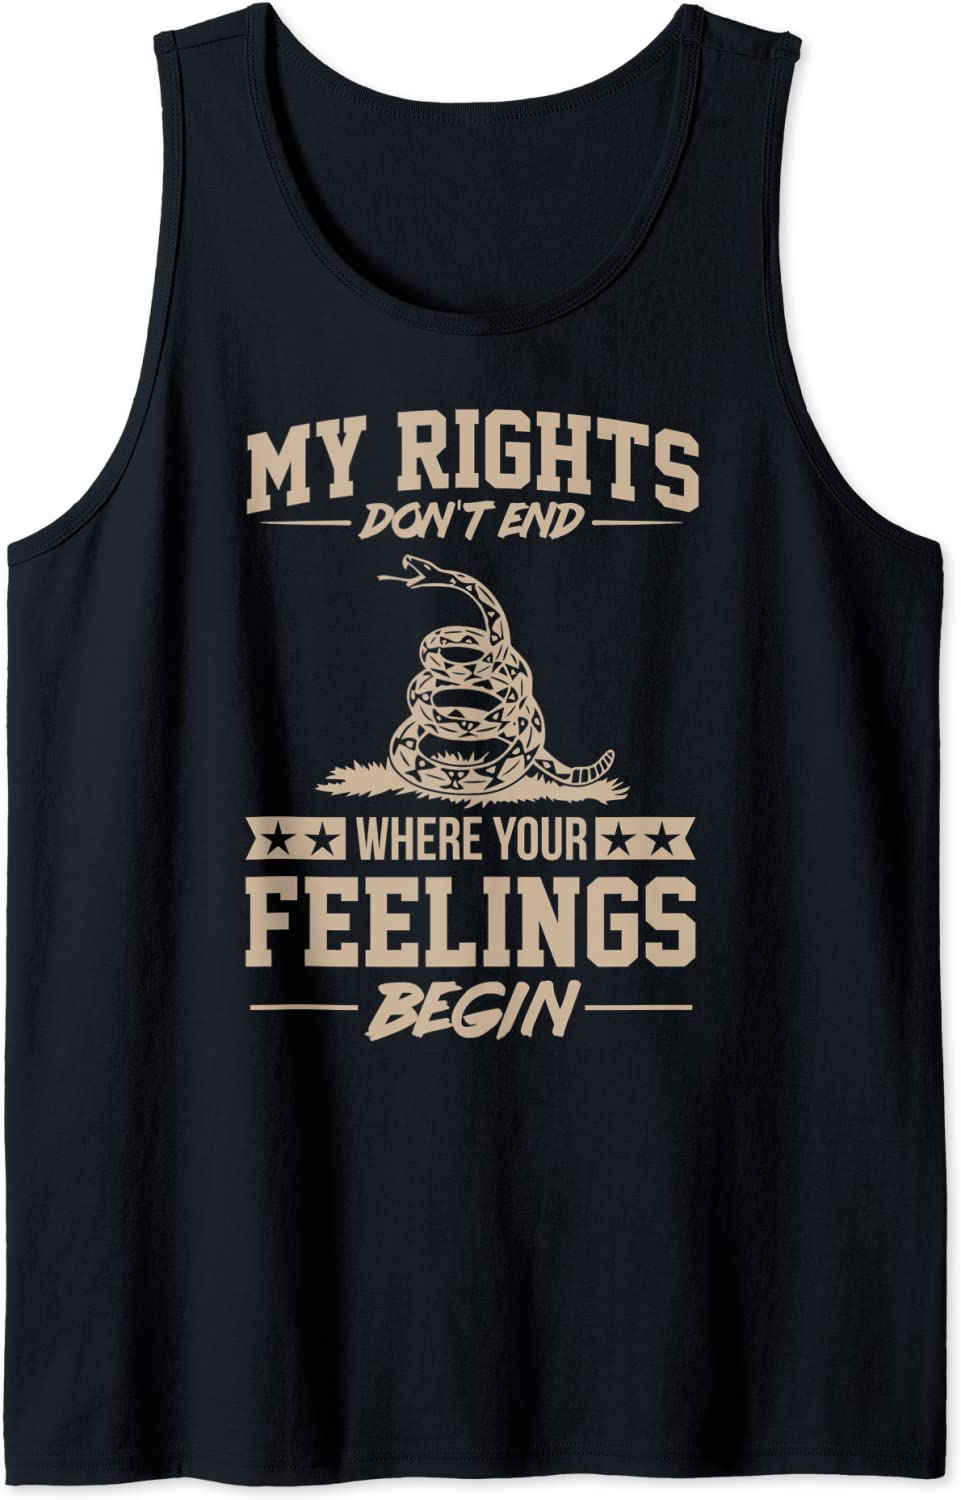 My Rights Fees free!! Don't End Where Your Begin safety Gift Funny Tank To Feelings